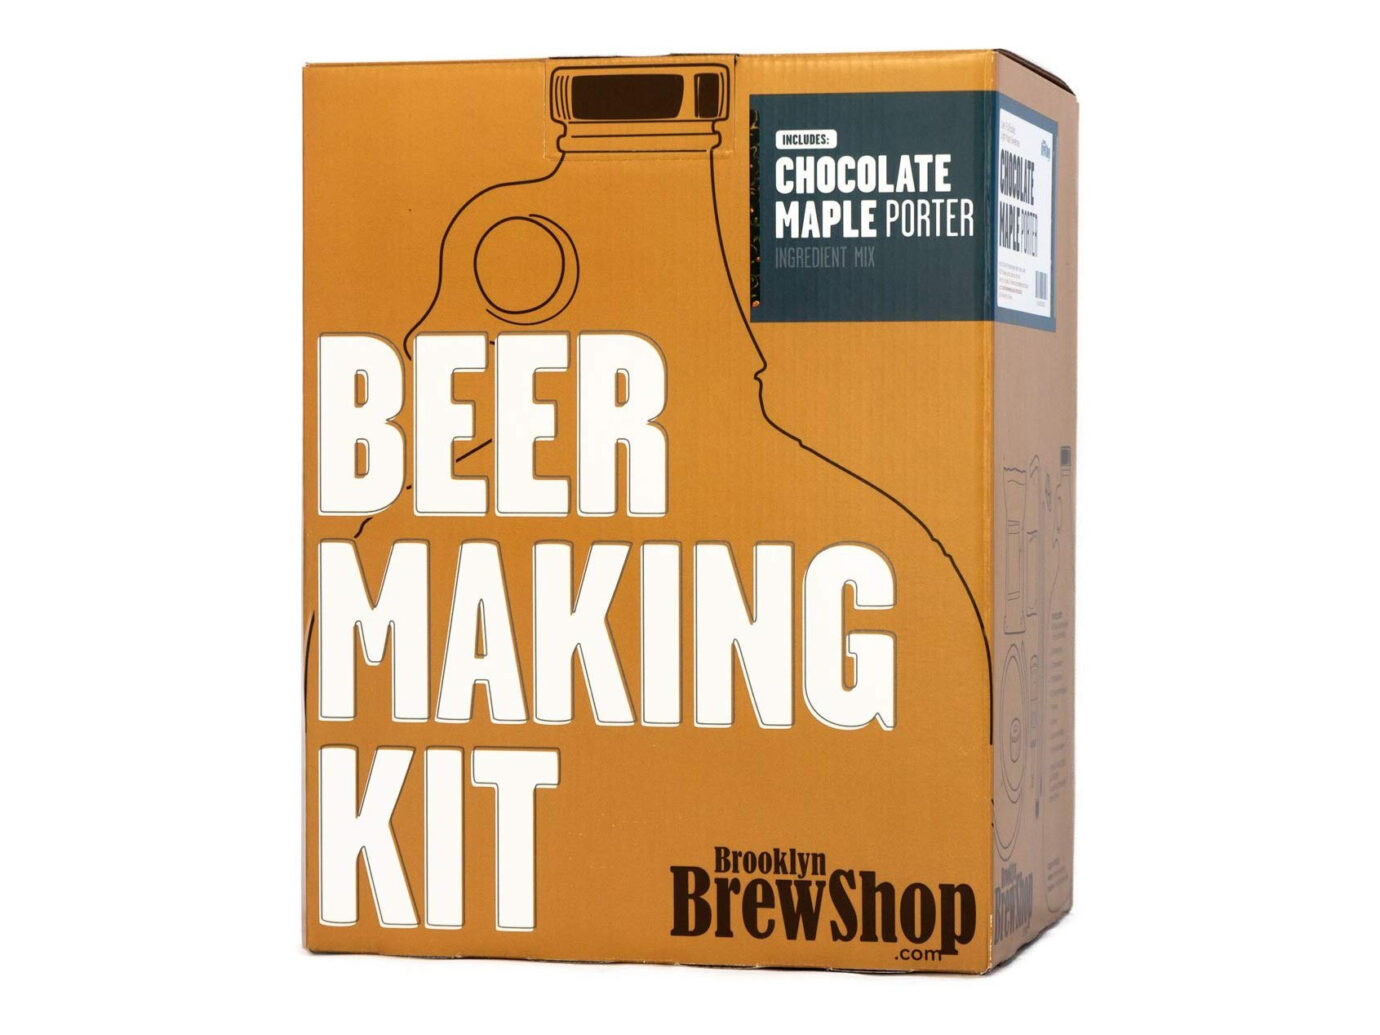 Brooklyn Brew Shop Chocolate Maple Porter Beer Making Kit